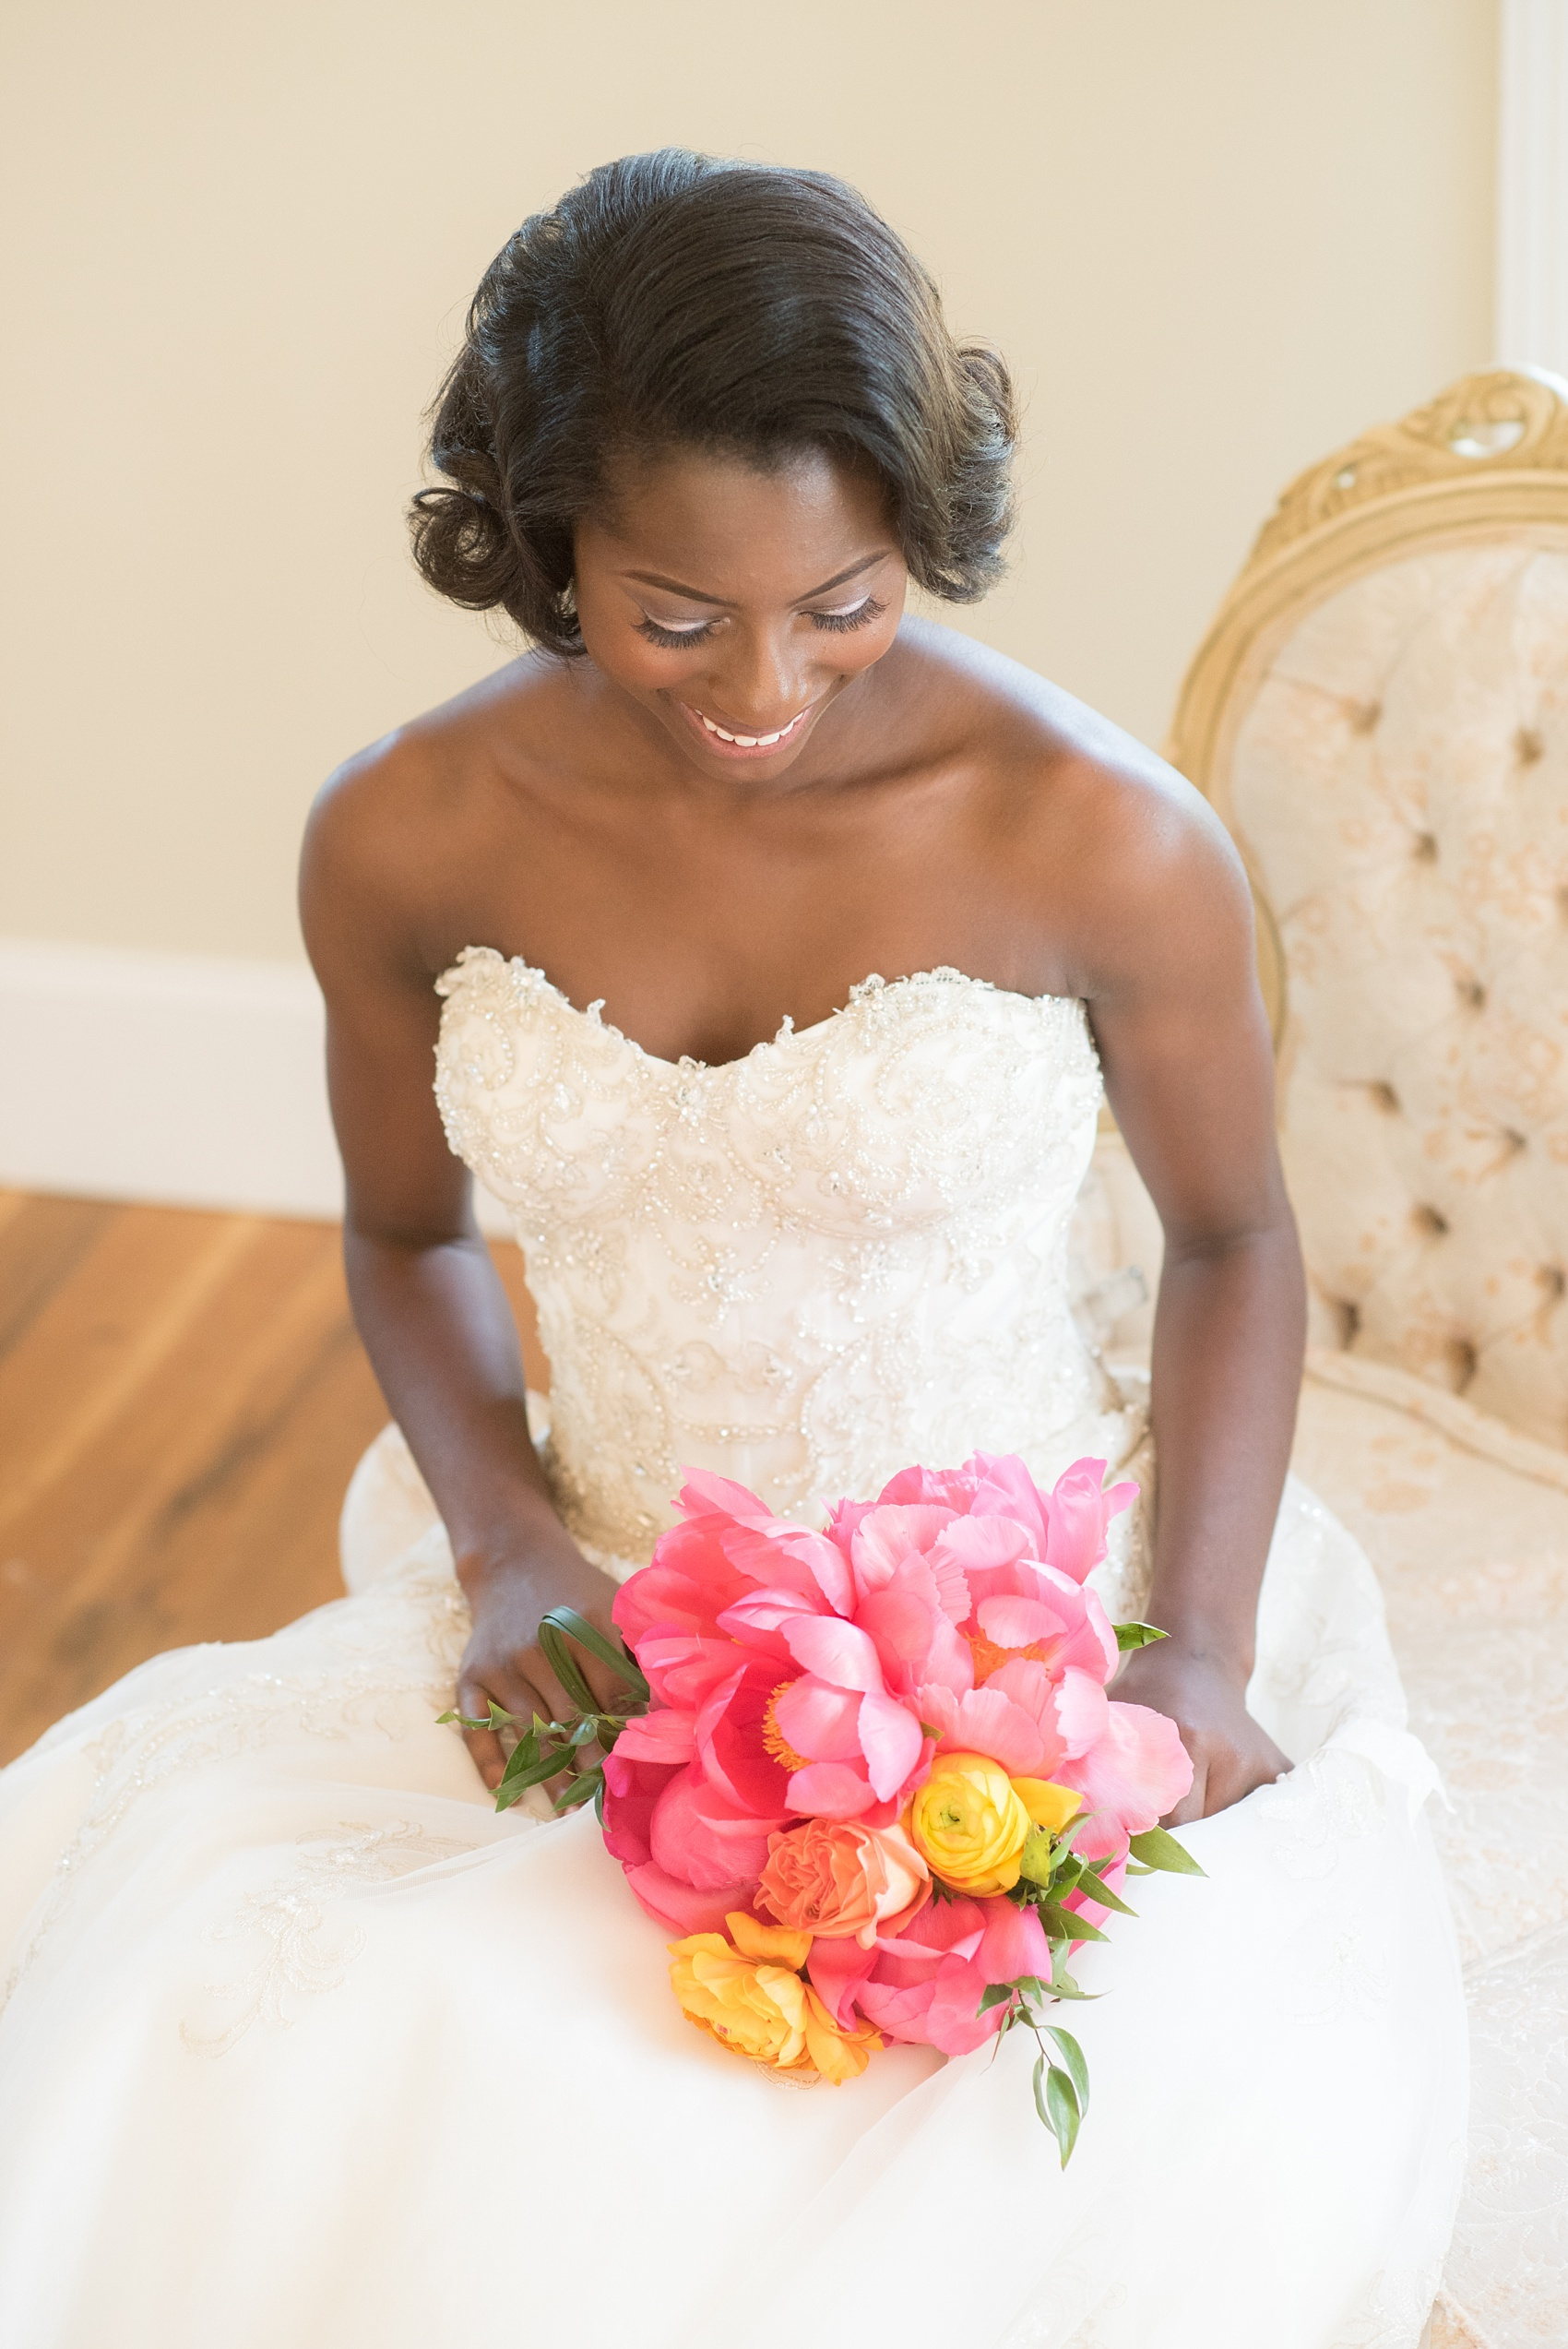 Mikkel Paige Photography photo at The Bradford, NC. Bride in a strapless gown on an ivory sofa inside the elegant NC home.